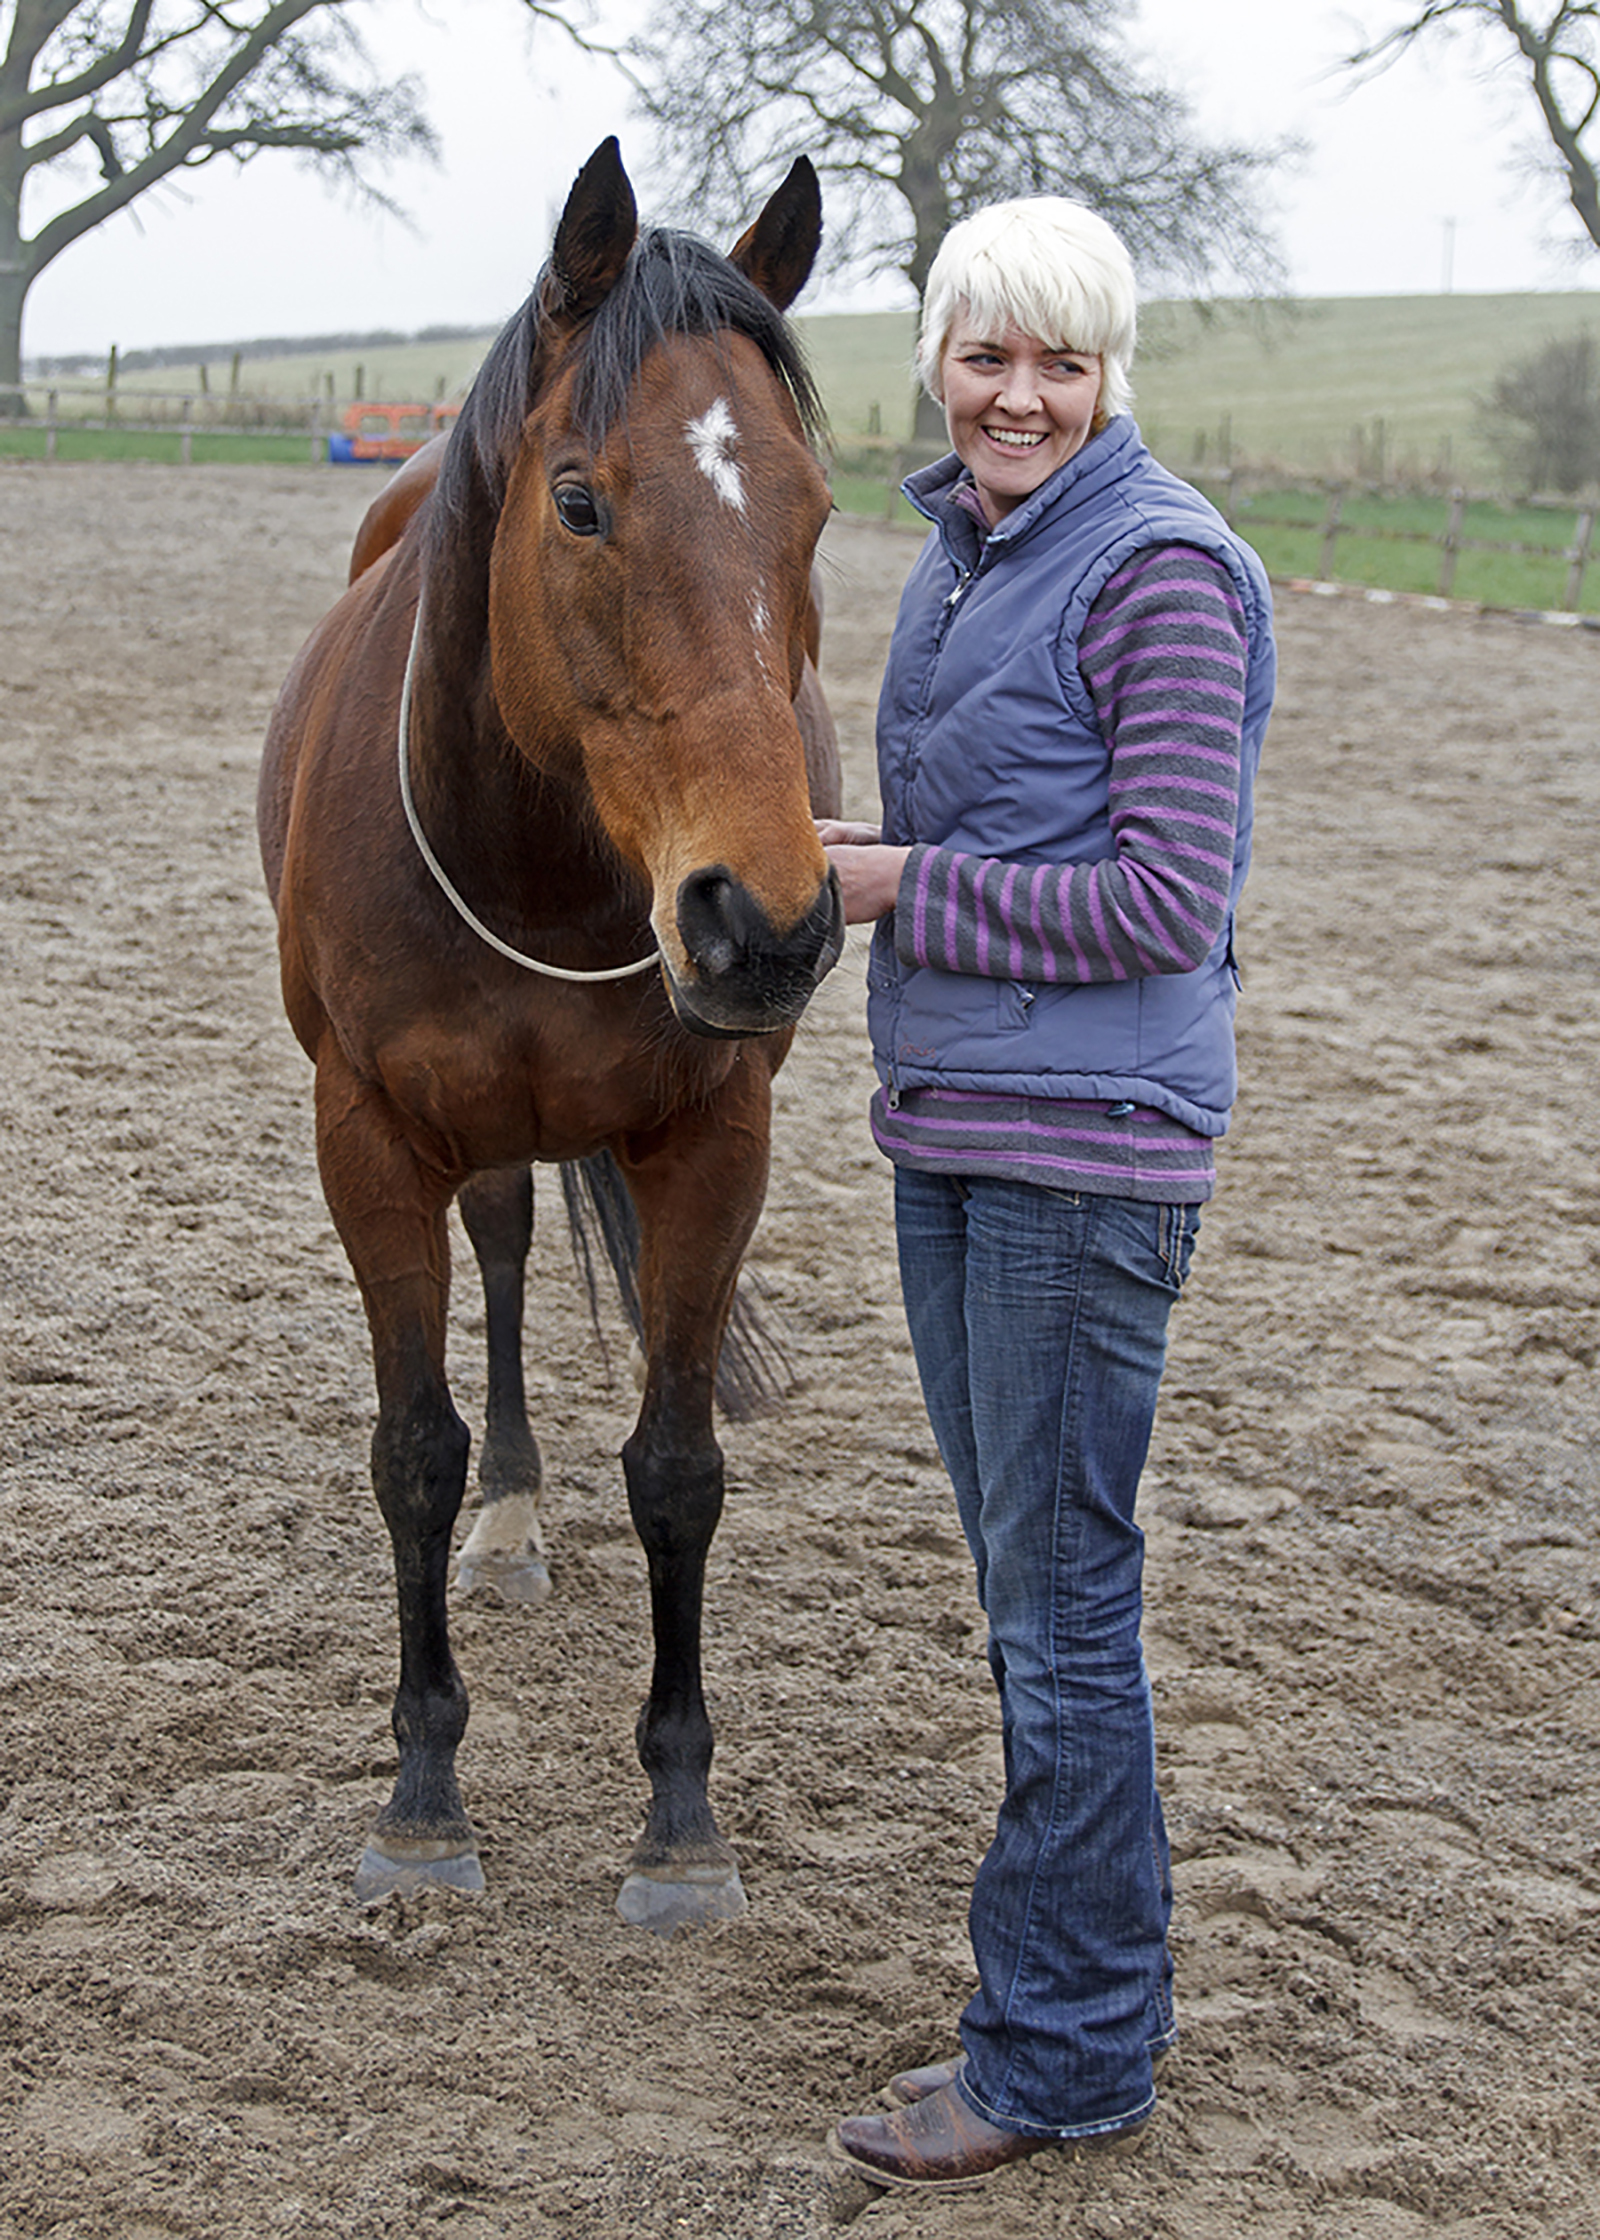 Pioneering equestrian course could help stop prisoners from re-offending